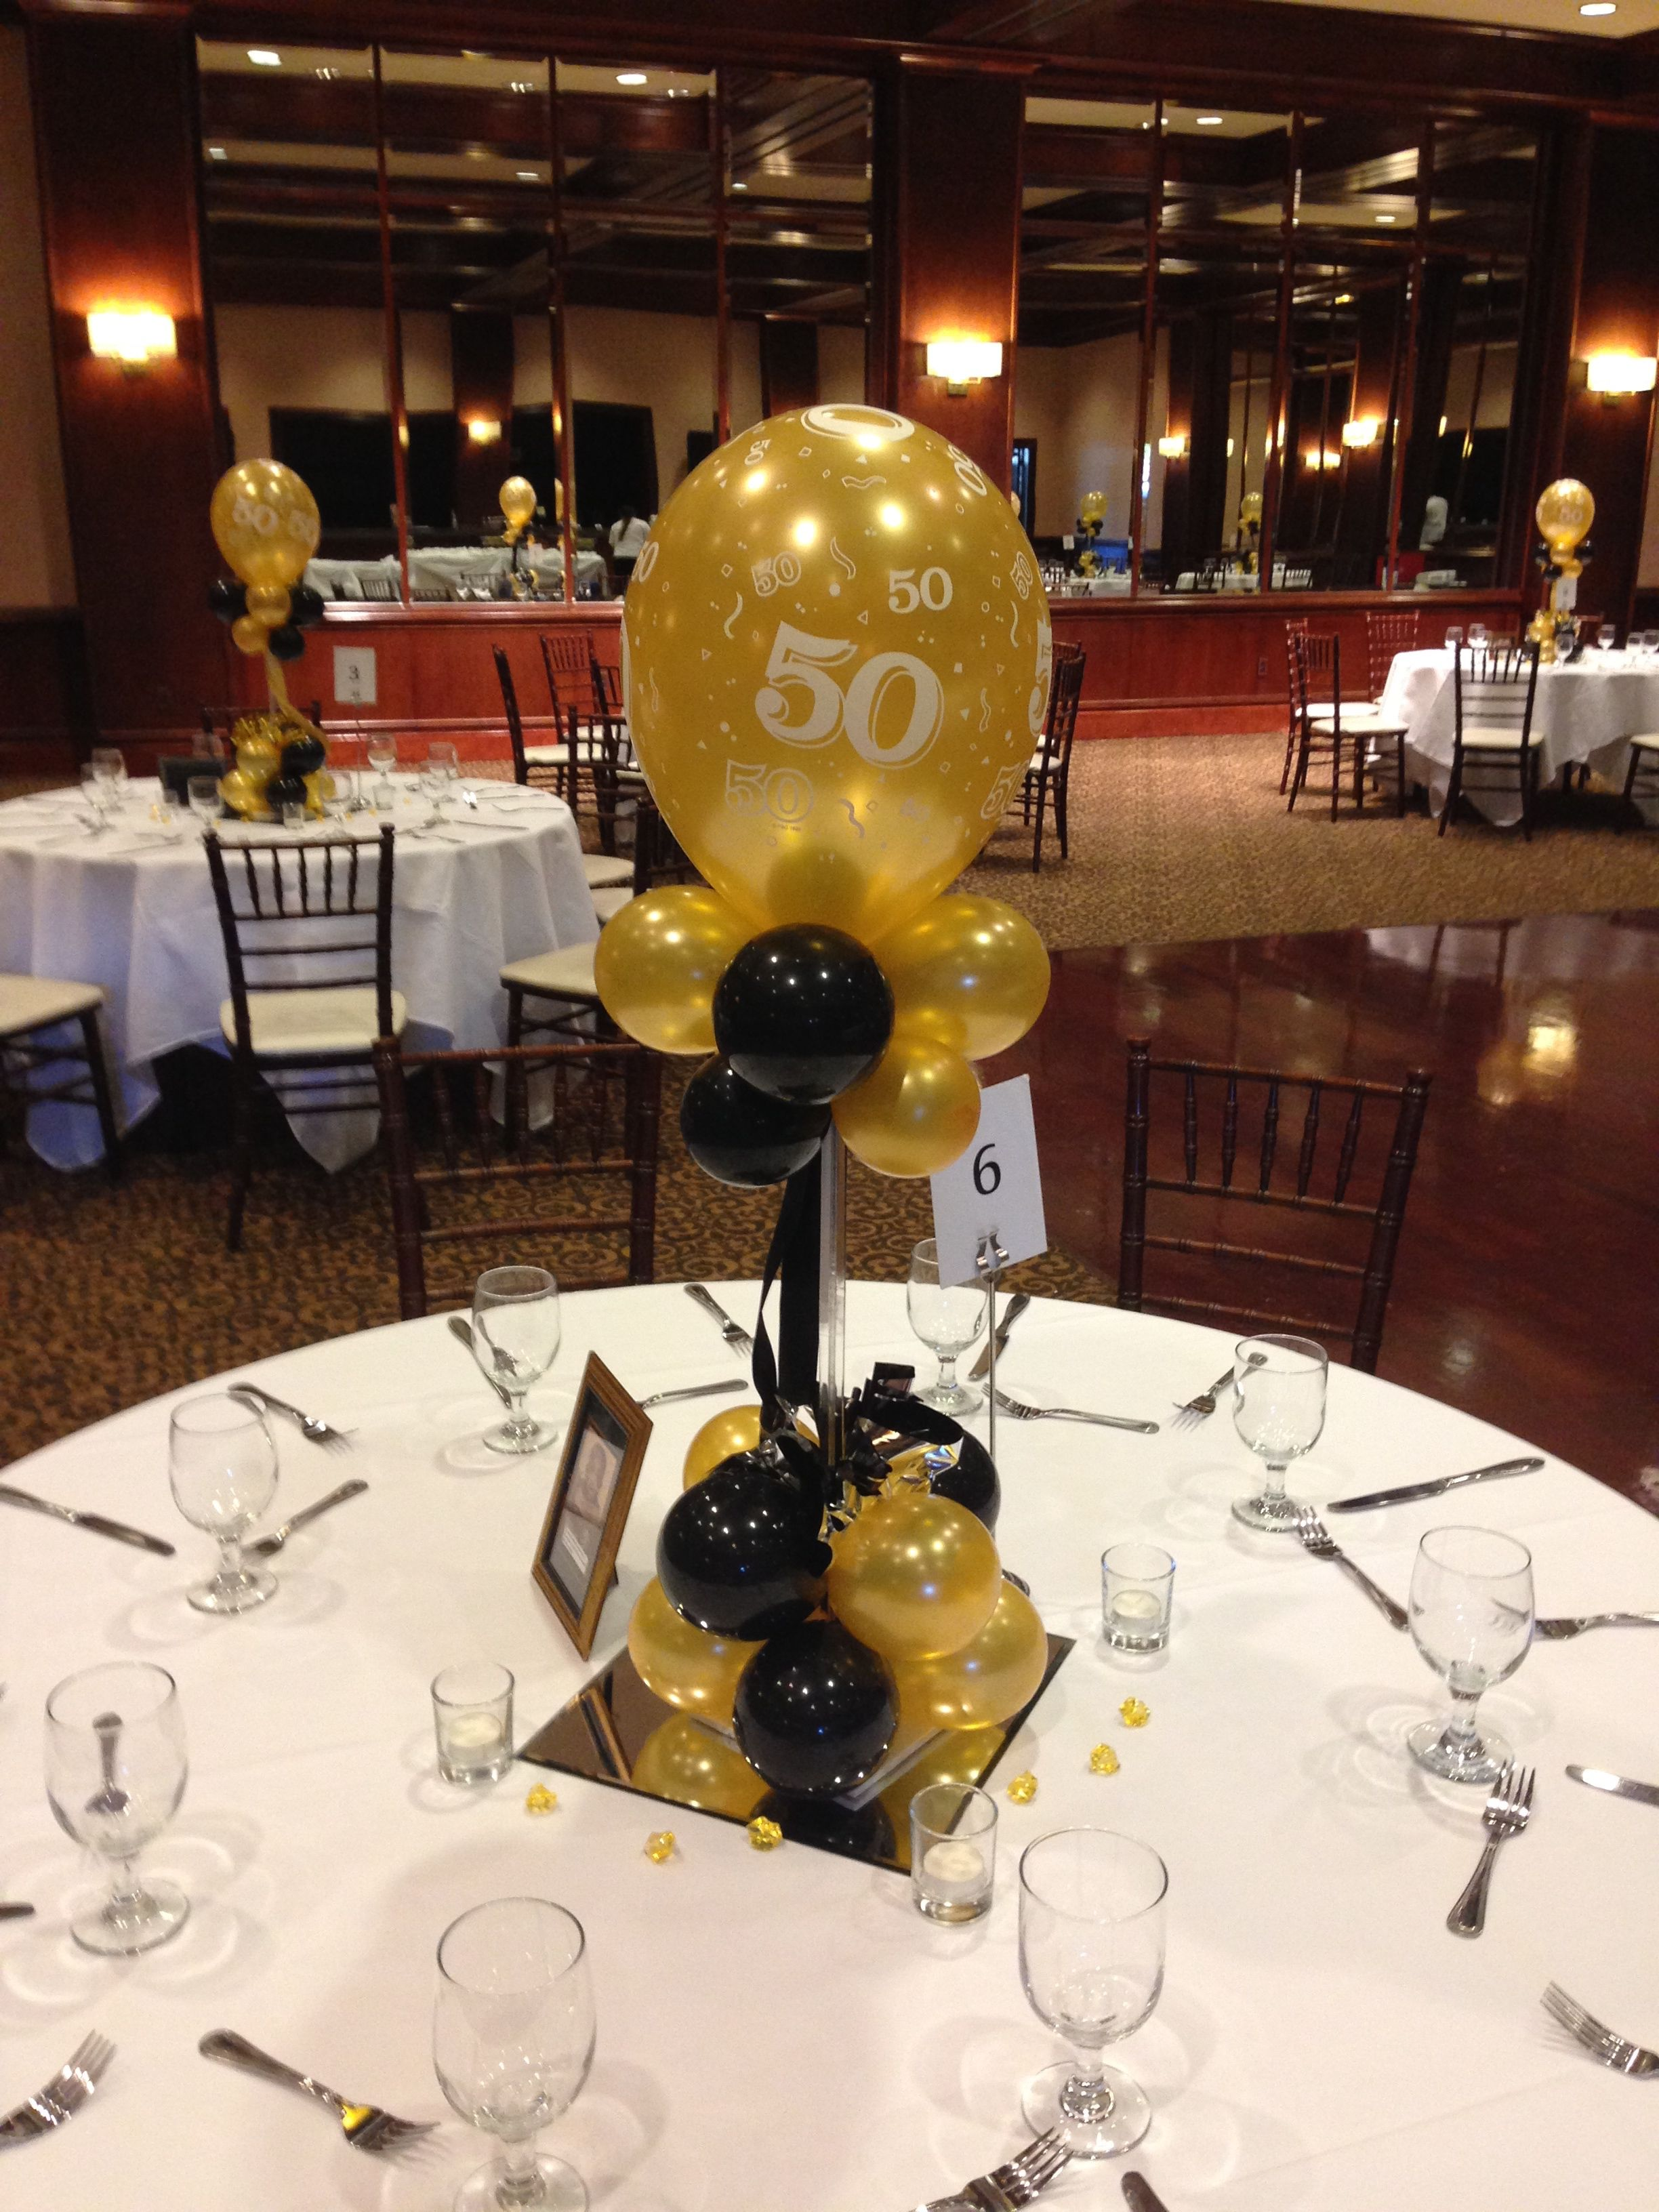 Black And Gold Balloon Centerpieces For A 50th Birthday Or Anniversary